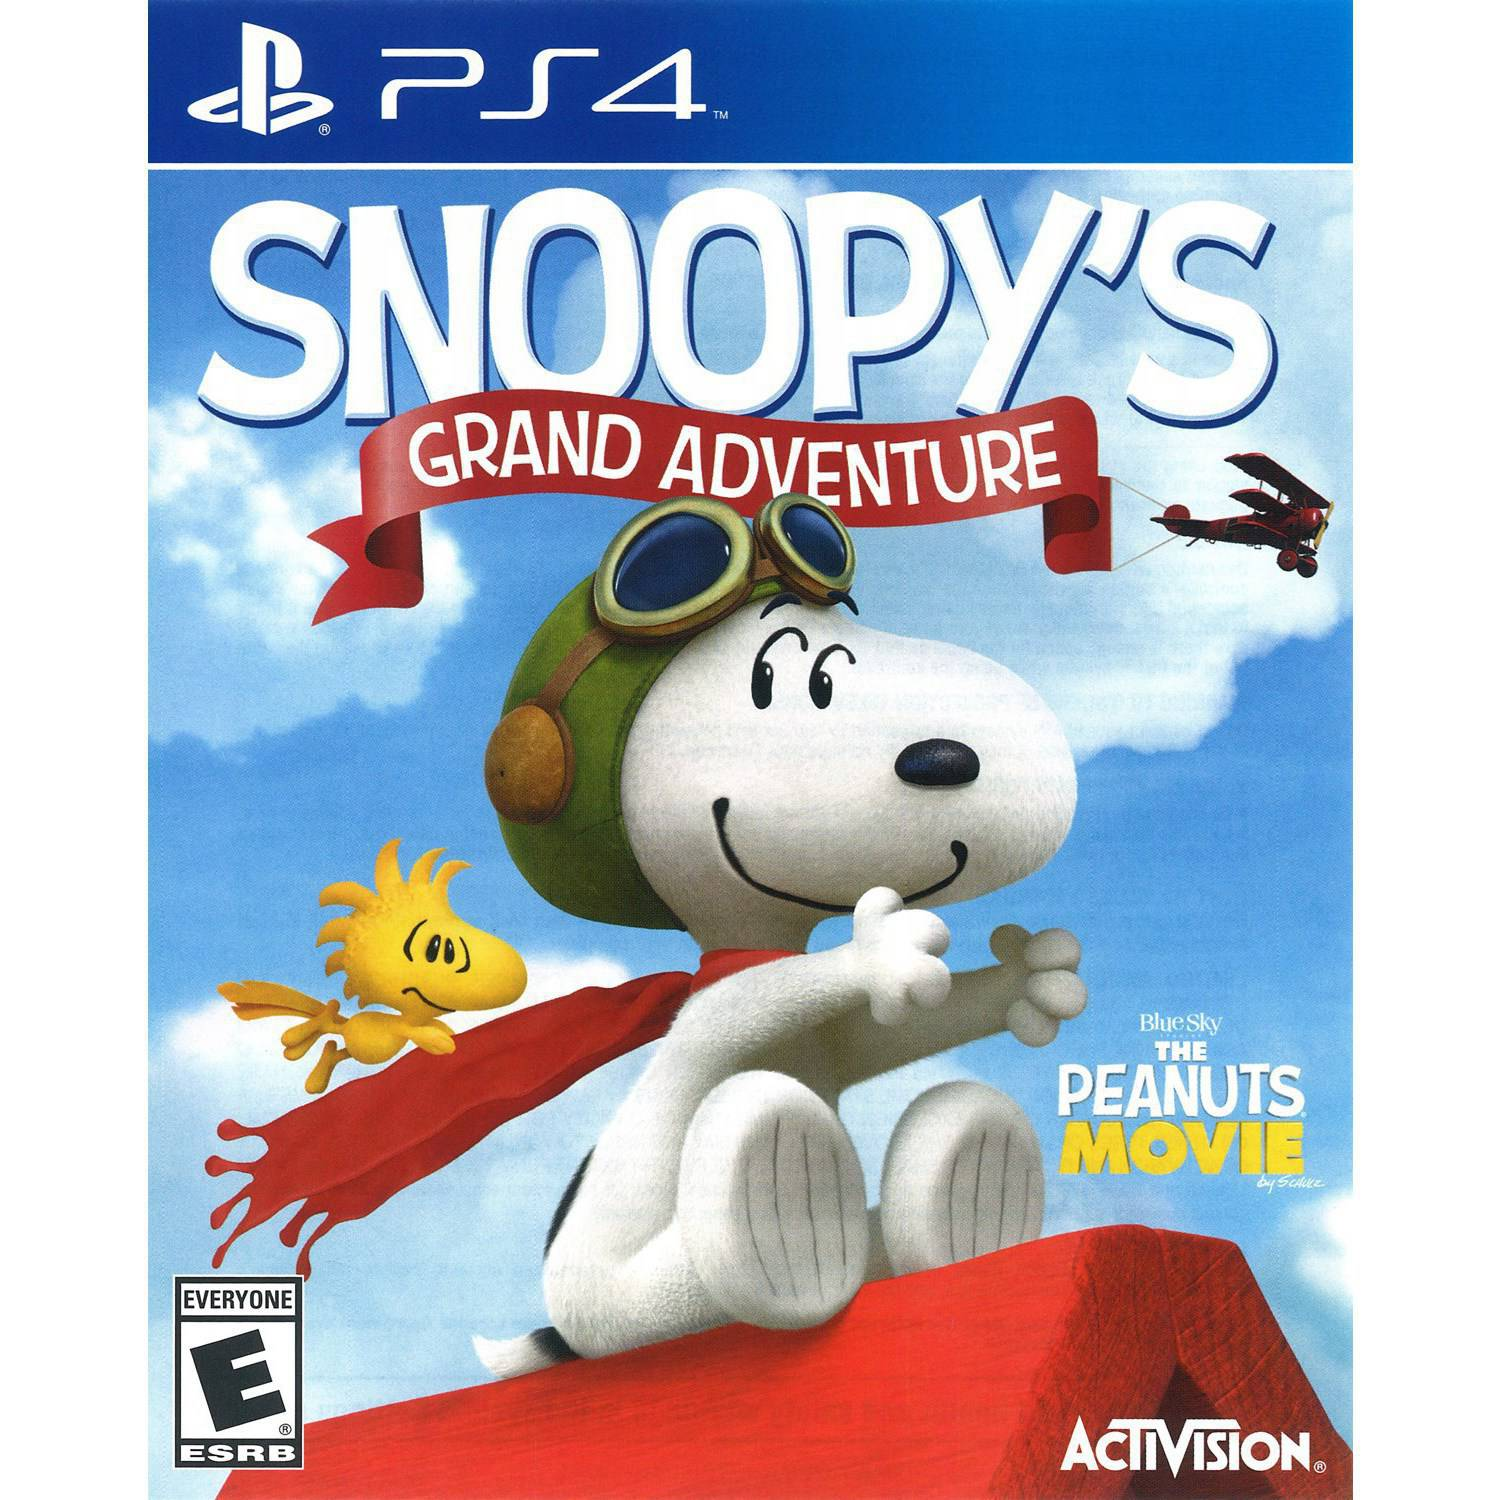 The Peanuts Movie: Snoopy's Grand Adventure (PS4)